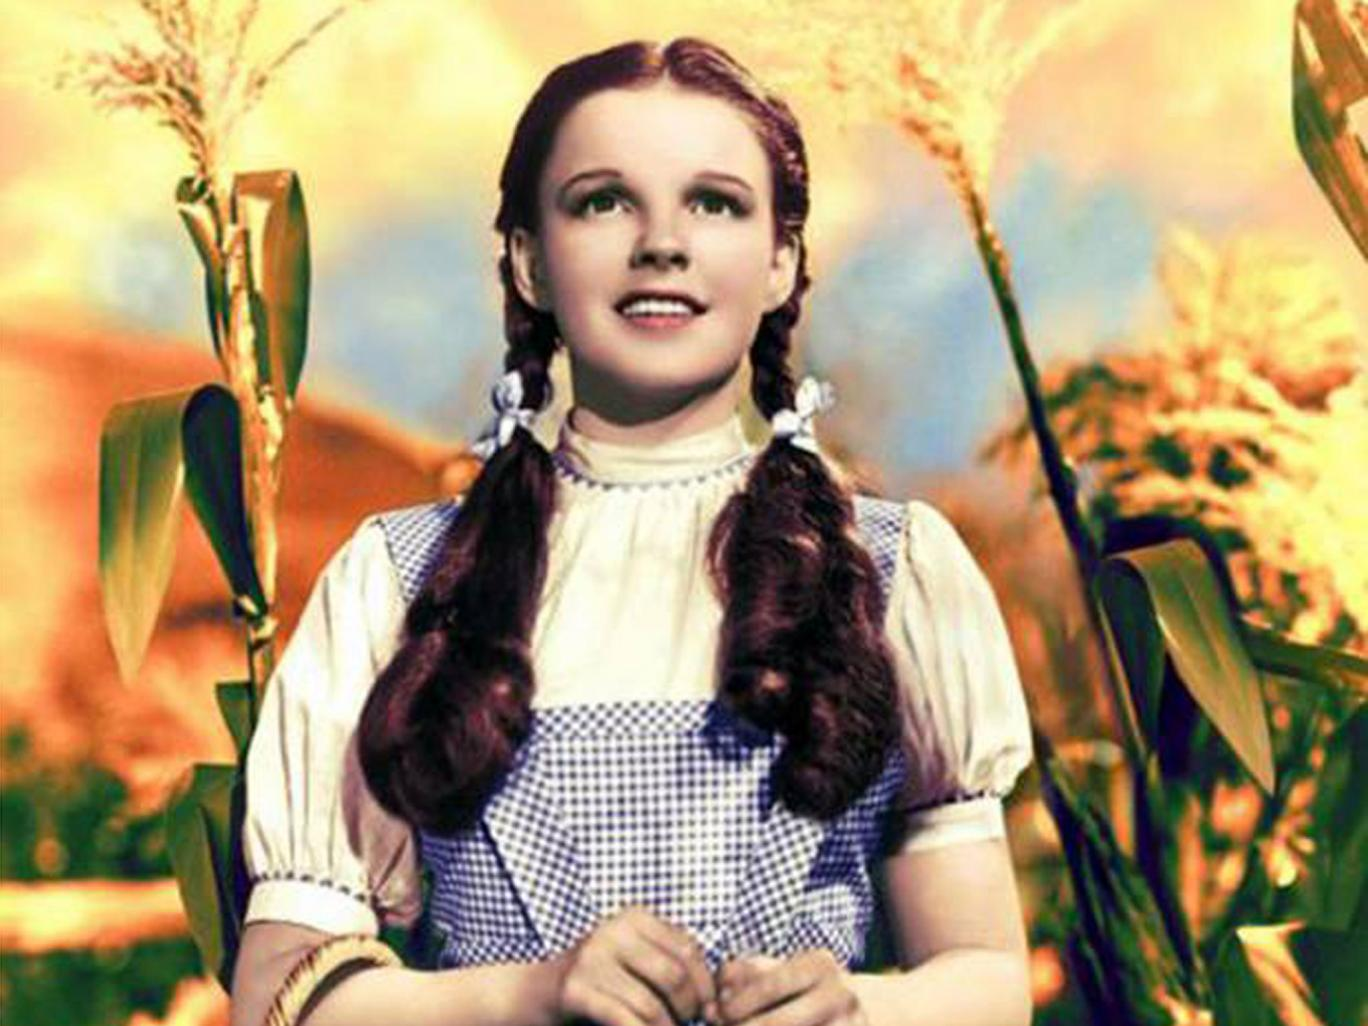 Judy Garland: Destroyed By The Gift That Made Her A Legend